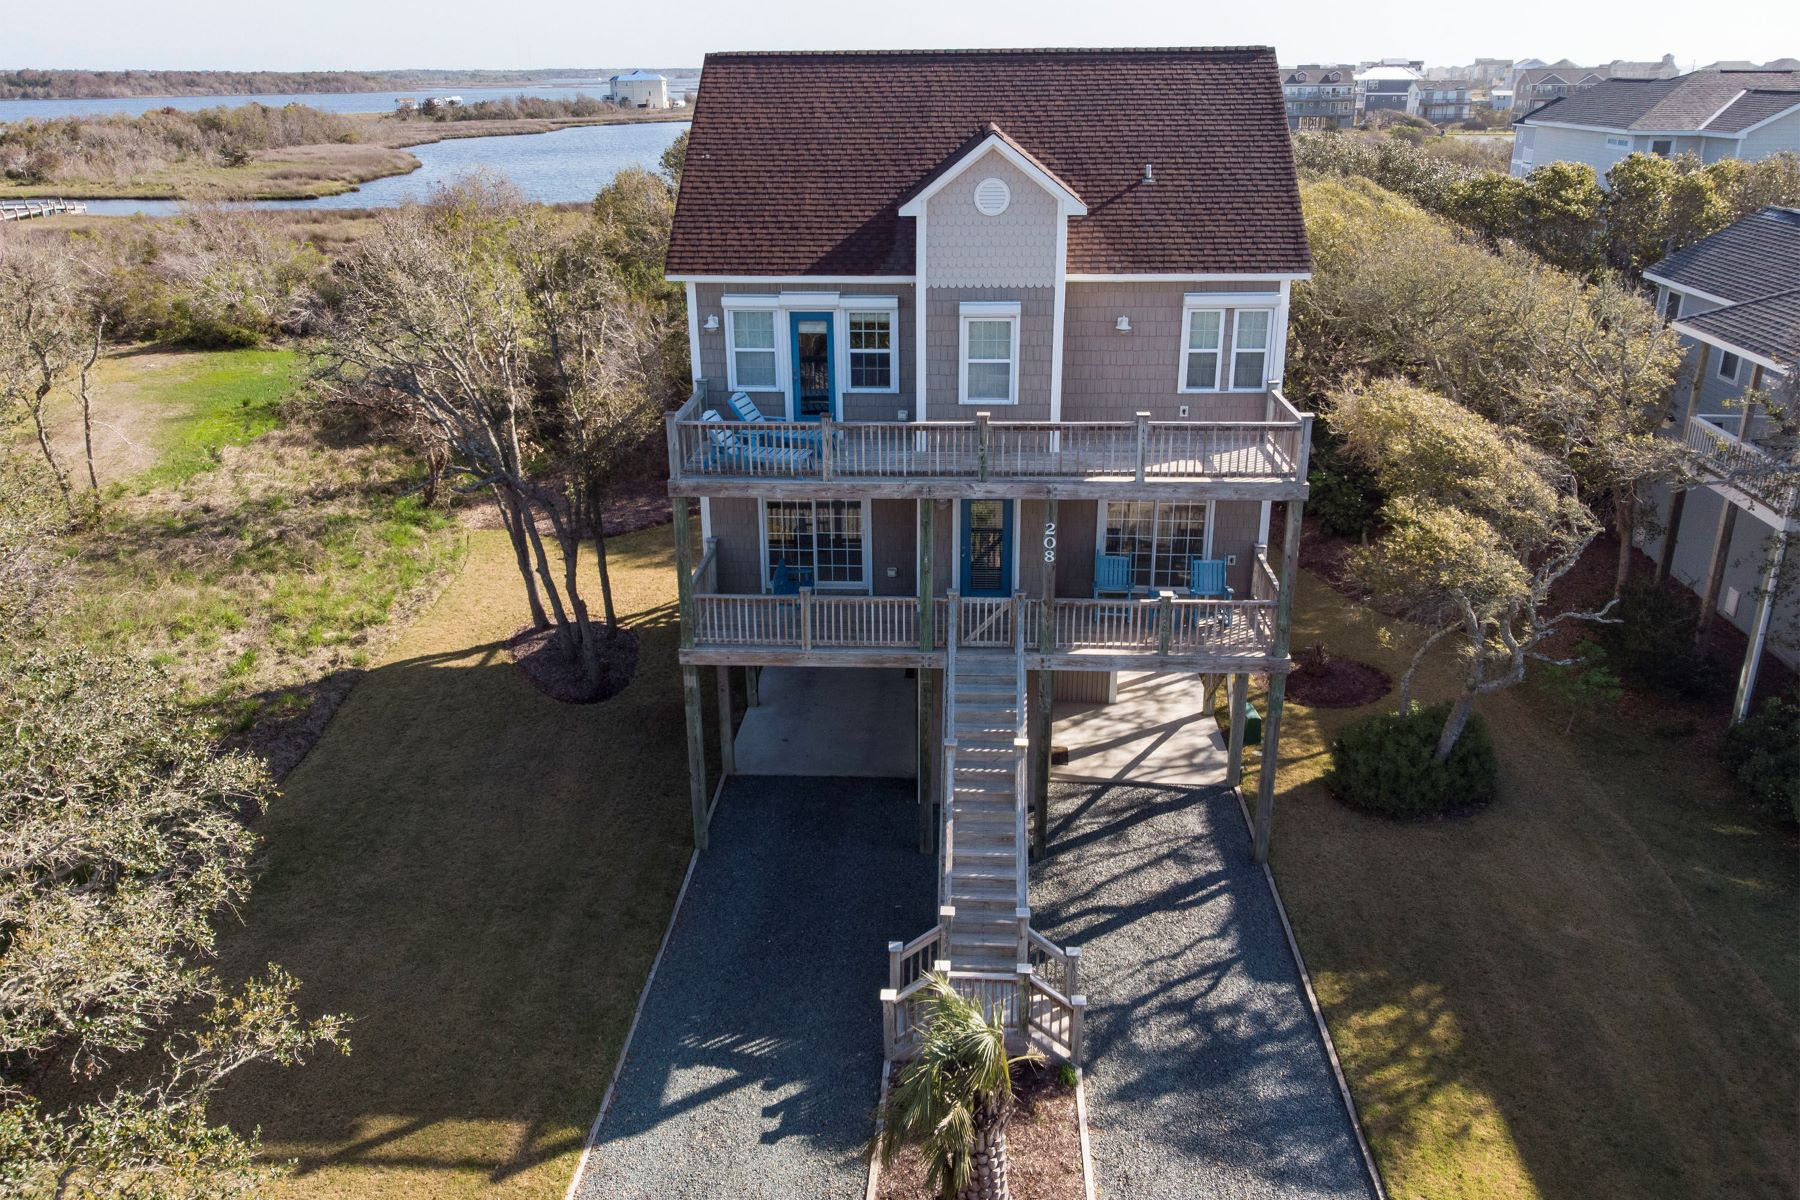 Single Family Homes for Active at Beach Oasis on North Topsail Beach 208 Porto Vista Dr N Topsail Beach, North Carolina 28460 United States